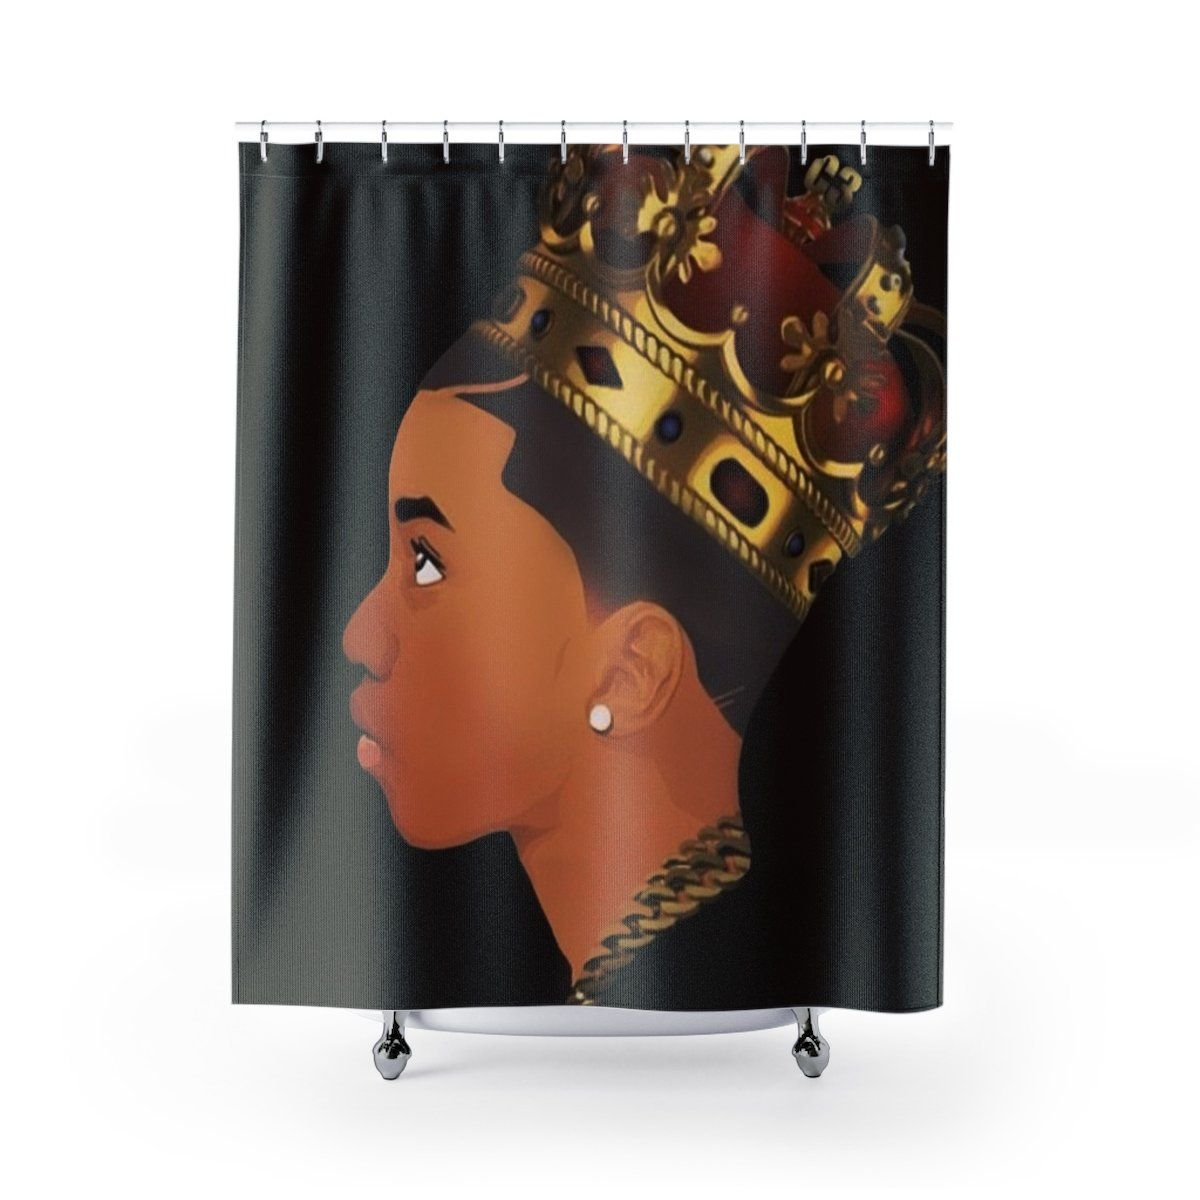 New Young King Shower Curtain In 2020 Afro Shower Curtain